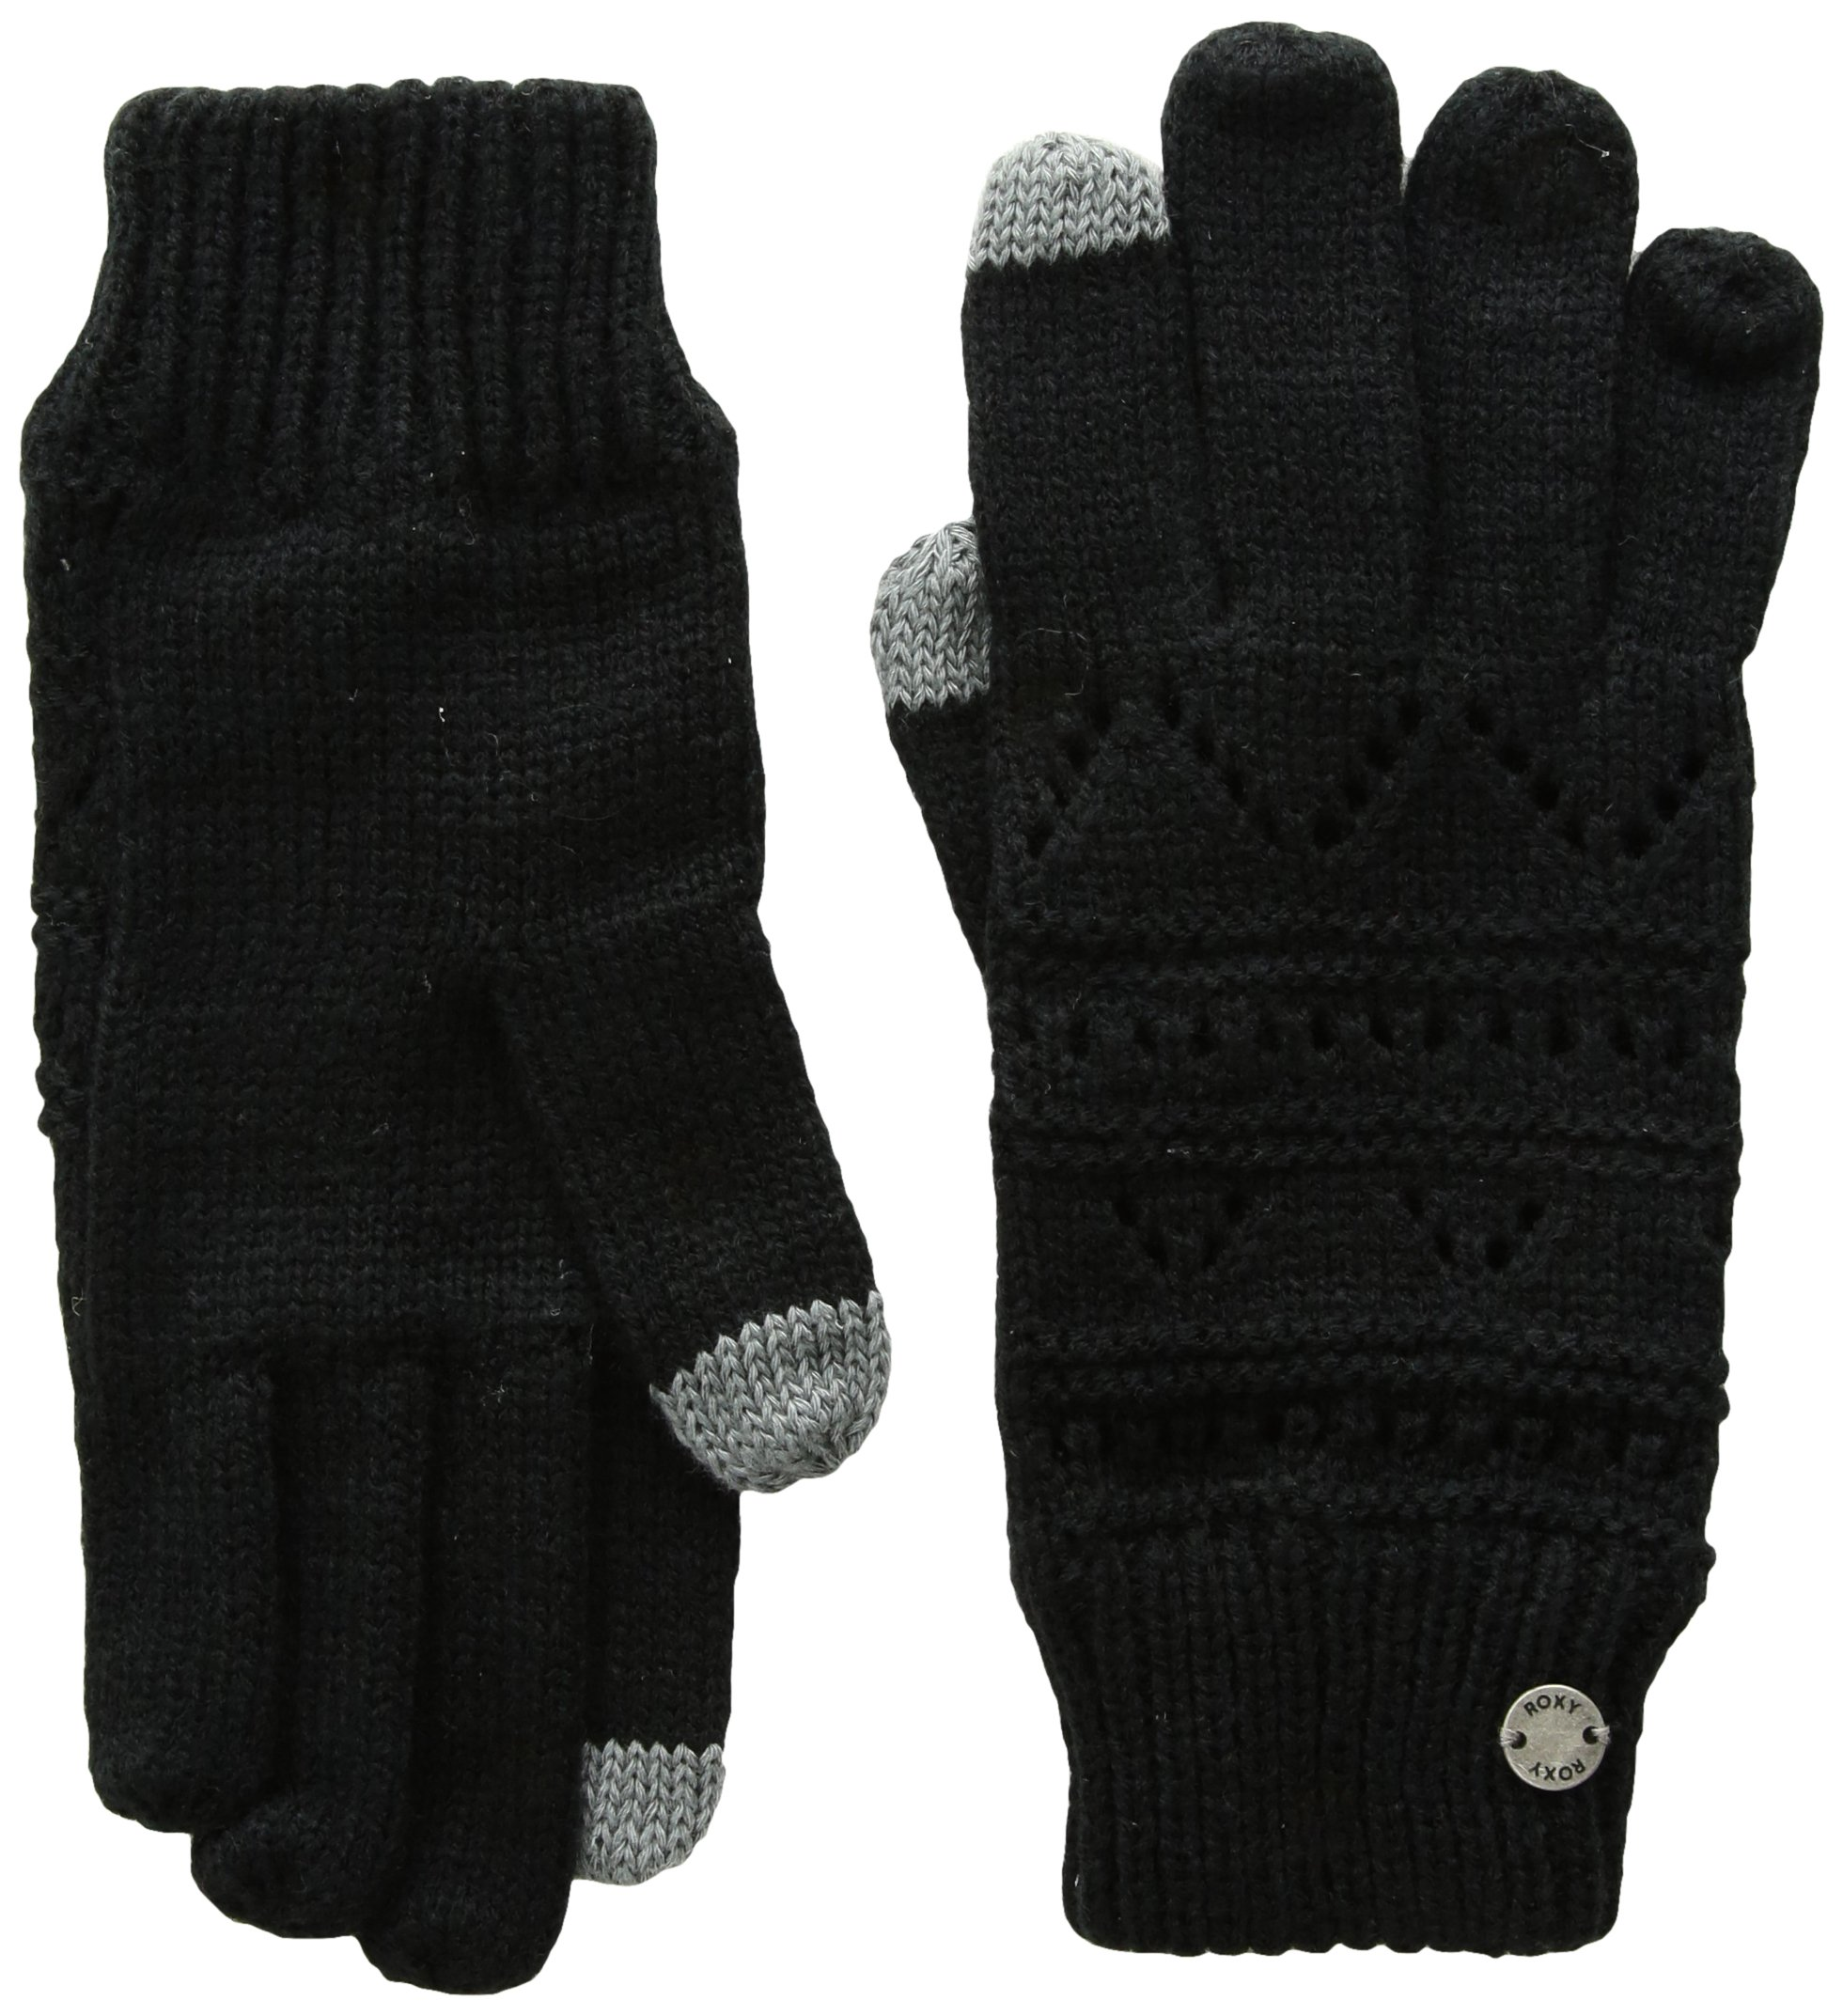 Roxy Women's Girl Challenge Gloves, Anthracite, One Size